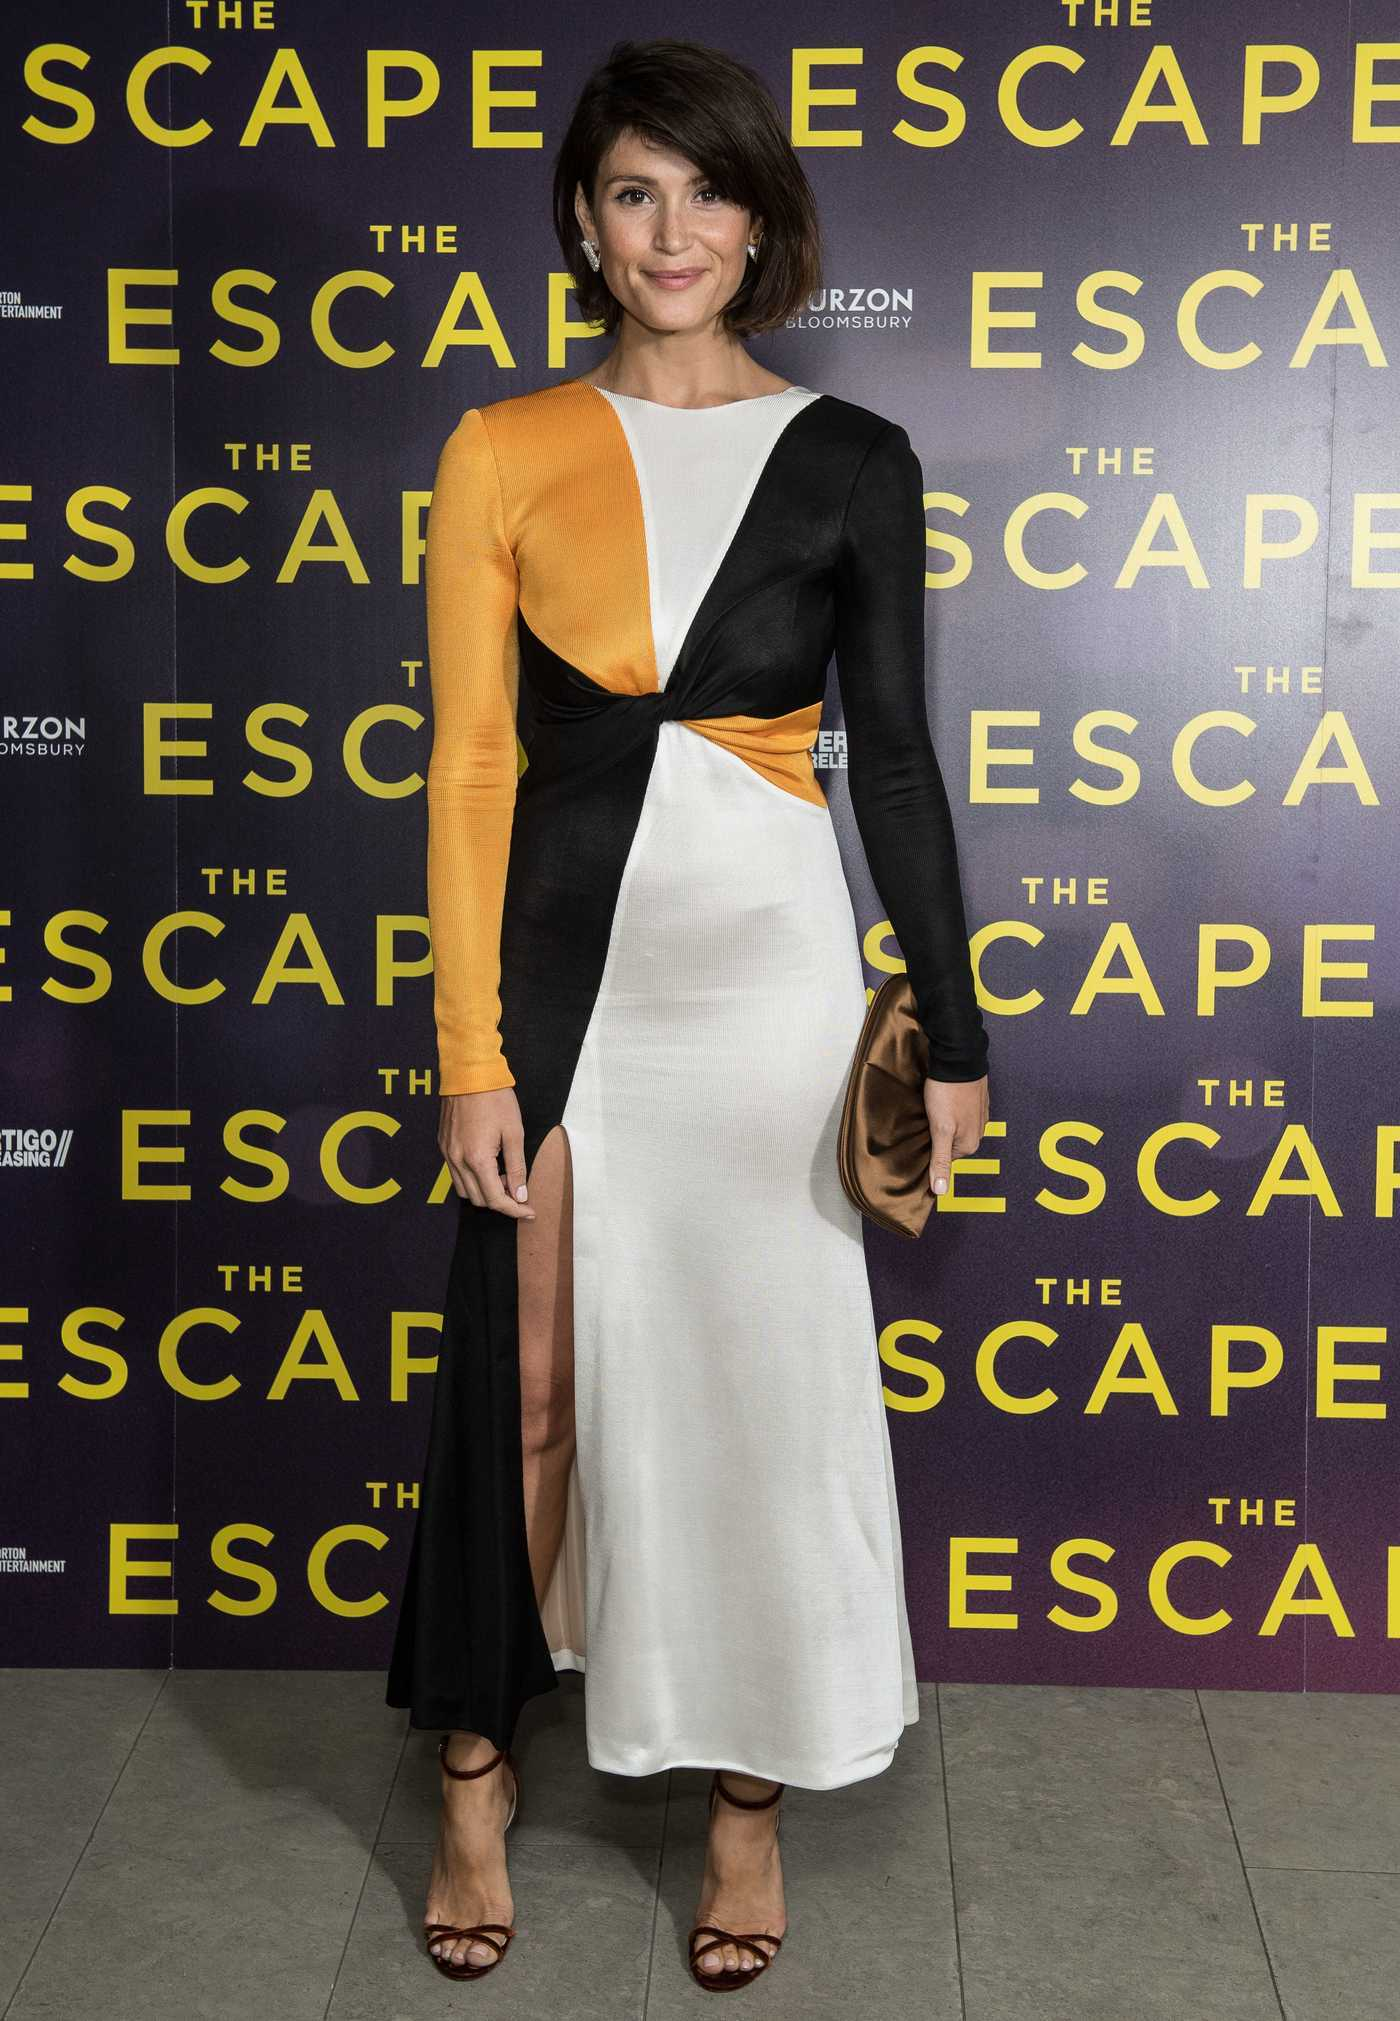 Gemma Arterton at The Escape Screening in London 07/19/2018